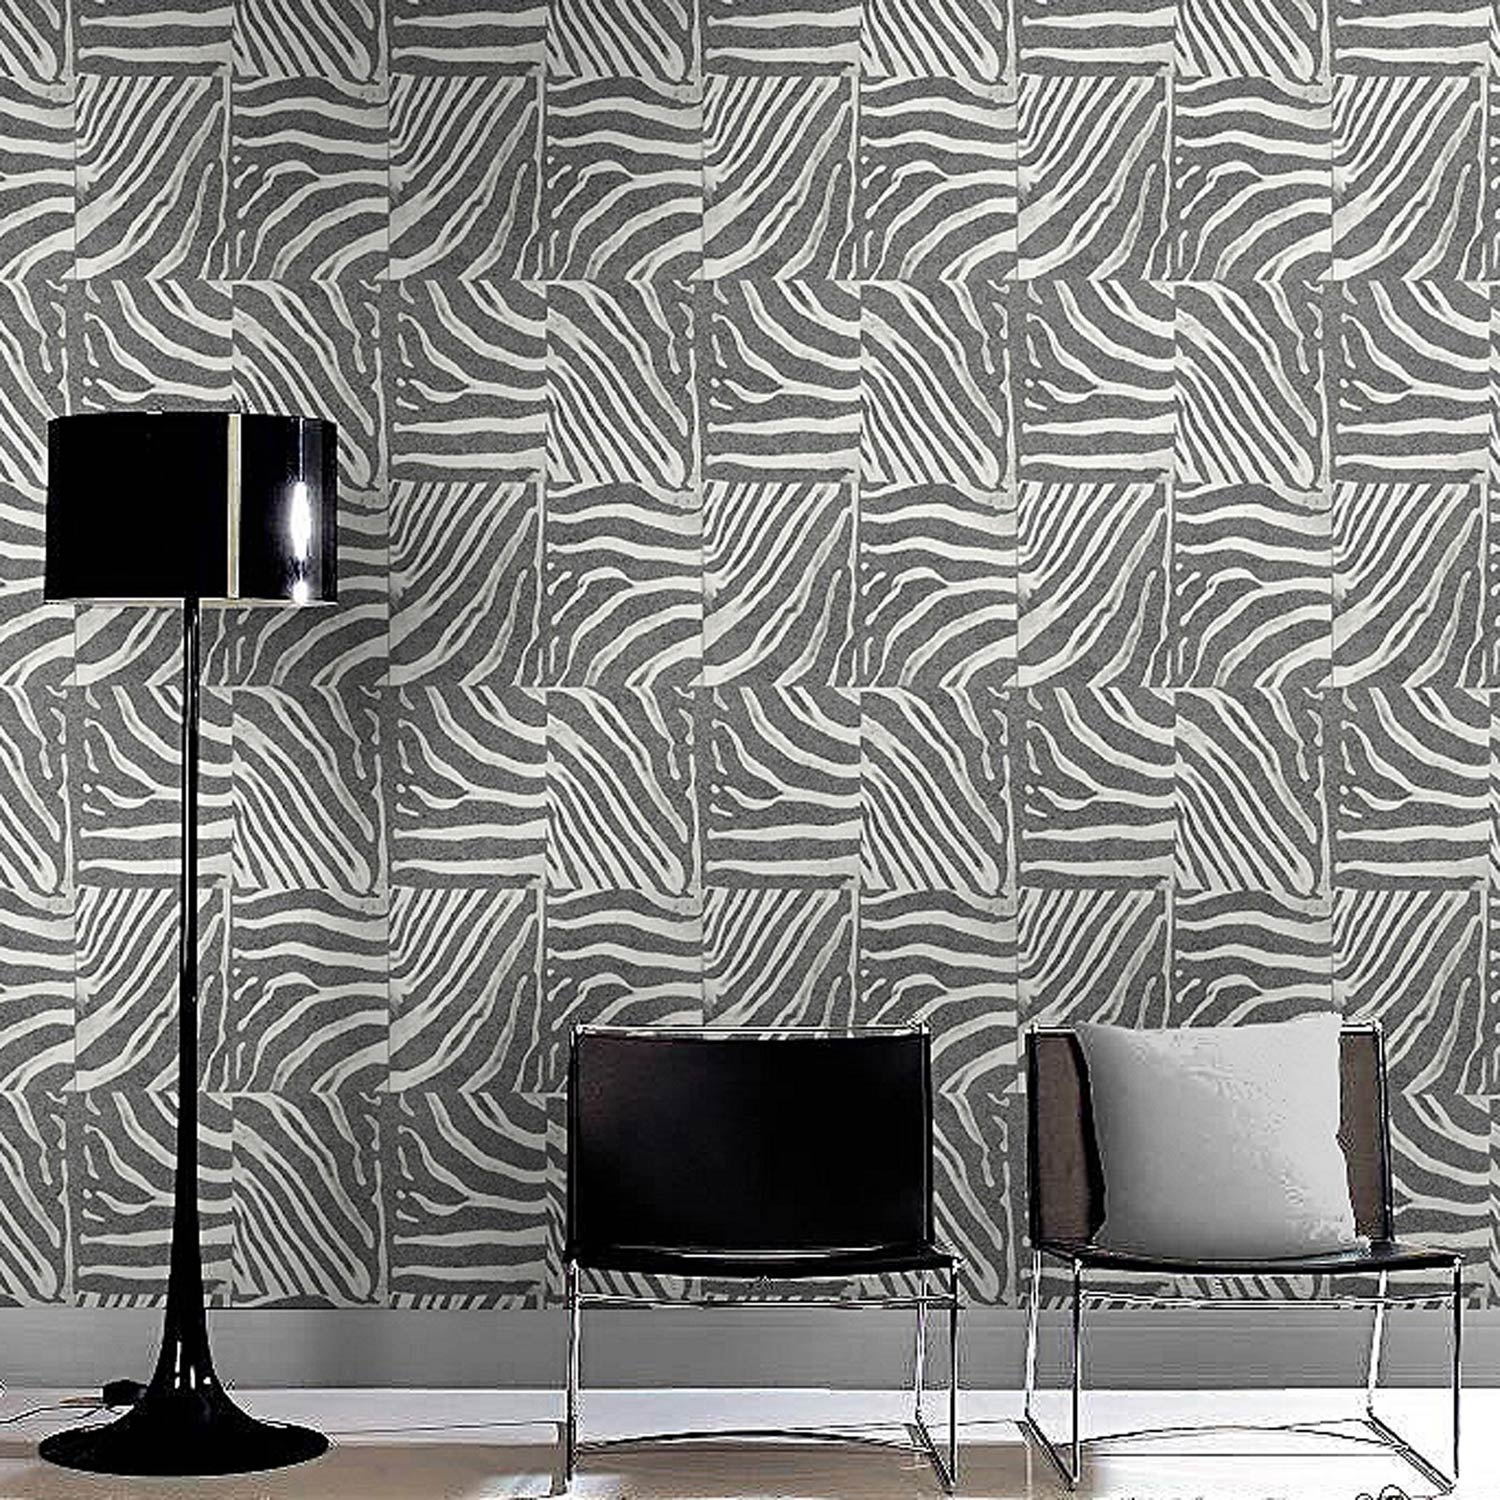 papier peint intiss zebre argent leroy merlin. Black Bedroom Furniture Sets. Home Design Ideas